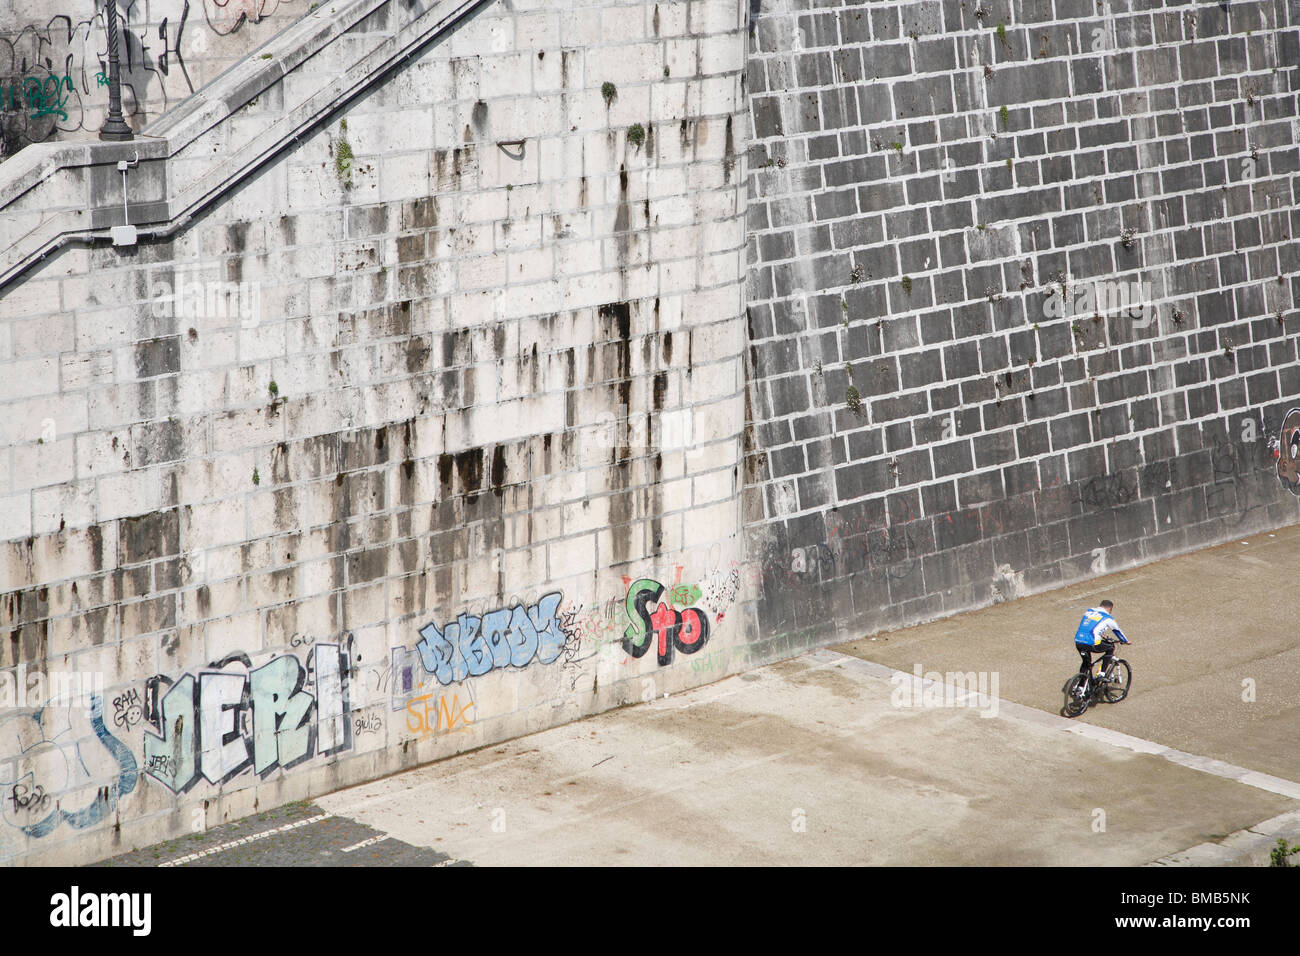 Bicyclist, Graffiti, river embankment, Rome, Italy - Stock Image